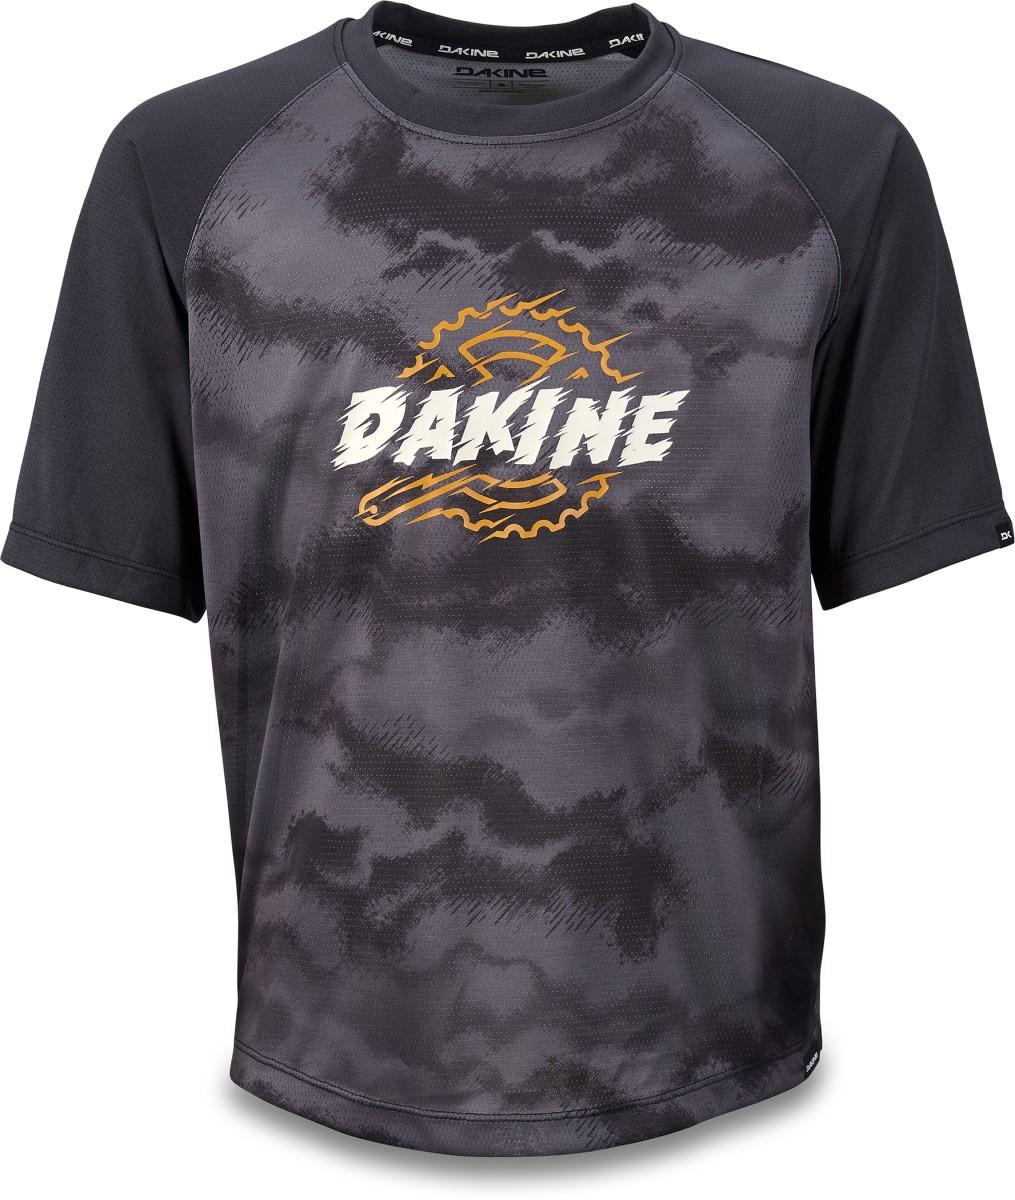 Dakine Prodigy Jersey in Black and Dark Ashcroft